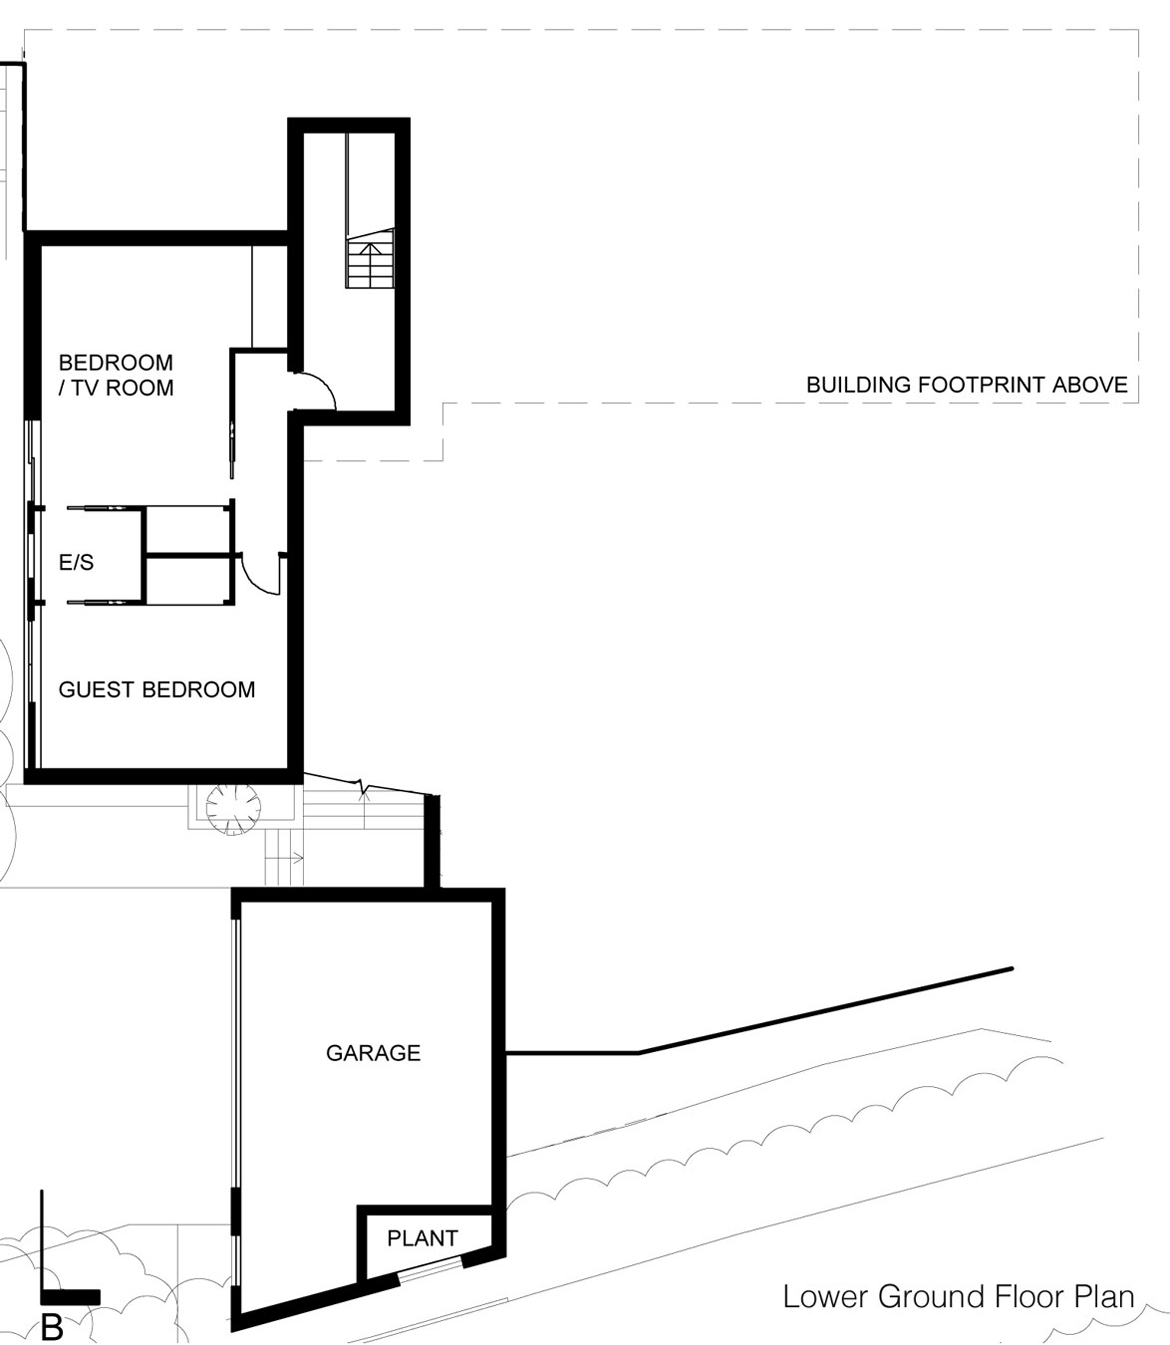 Lower Ground Floor Plan, Eco-Friendly Modern Home in Tandridge, England